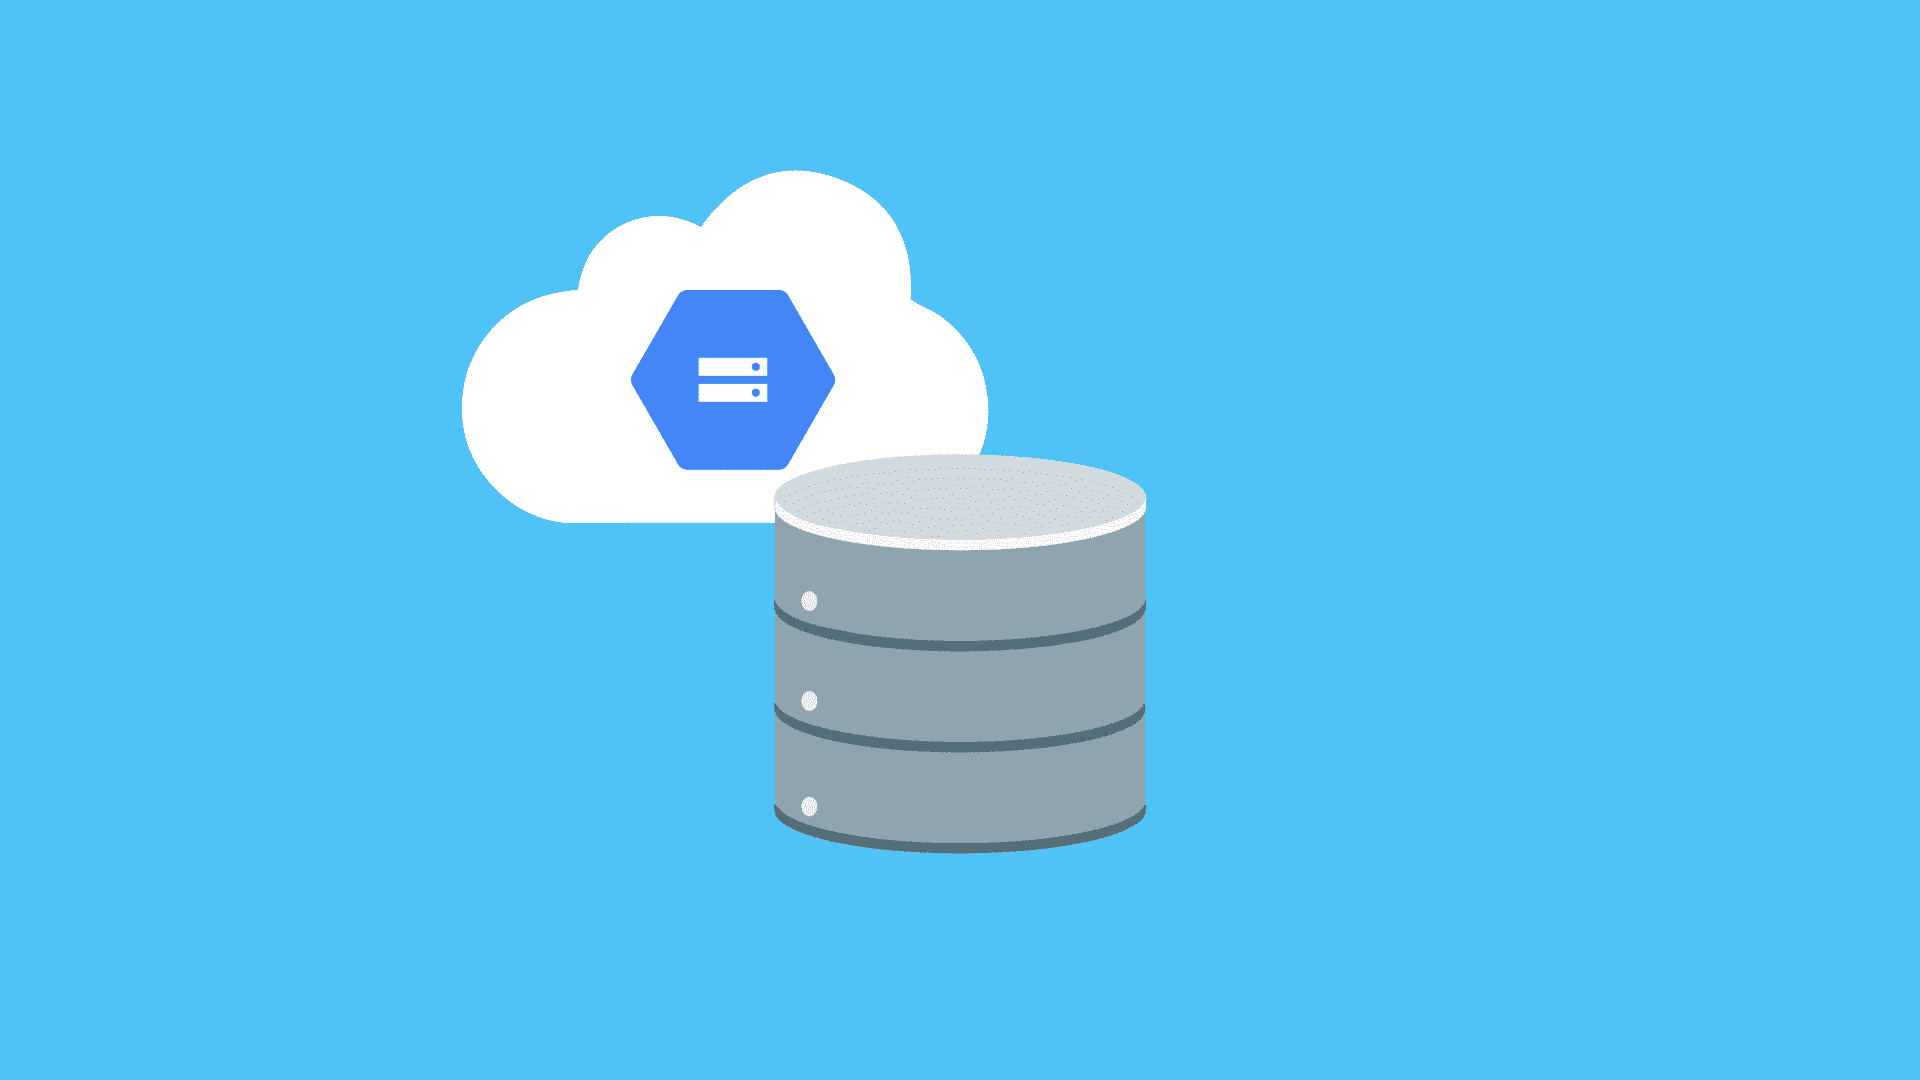 Database cloud